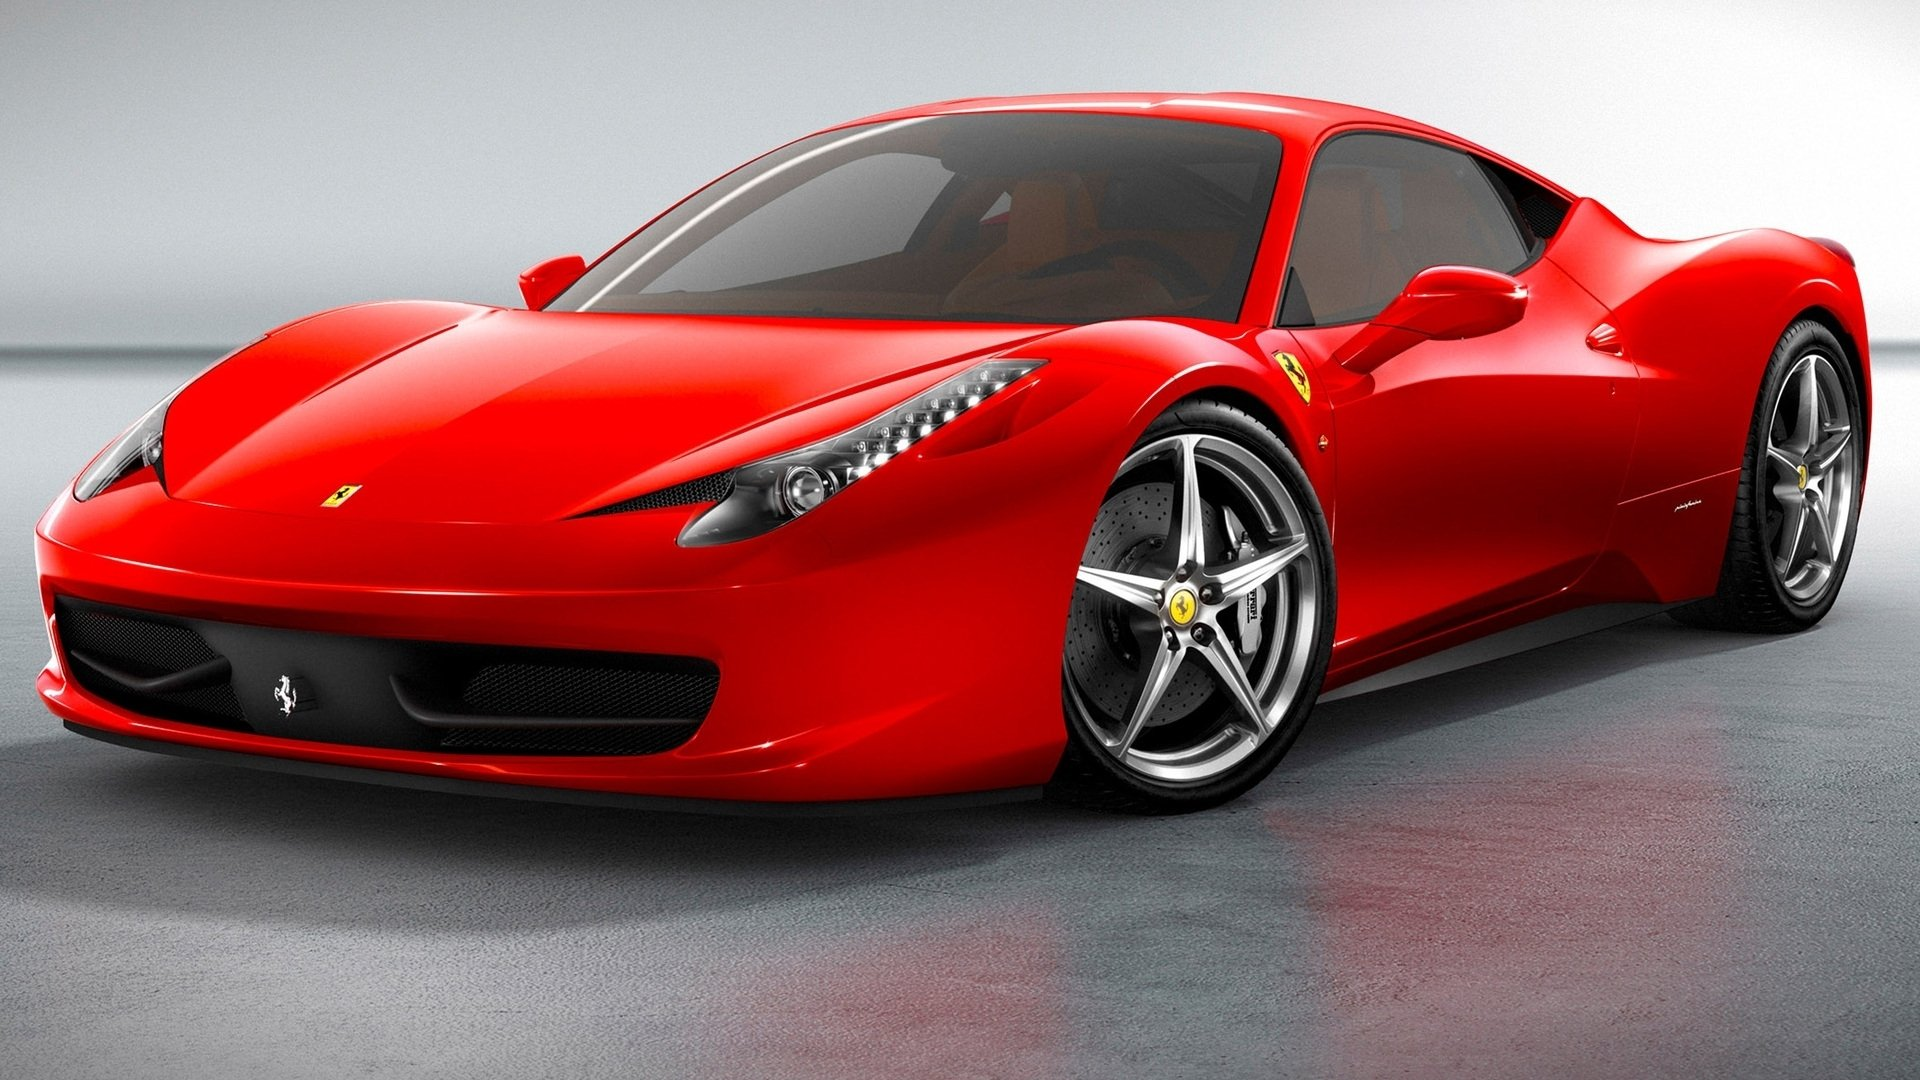 1920x1080 - Ferrari 458 Italia Wallpapers 10